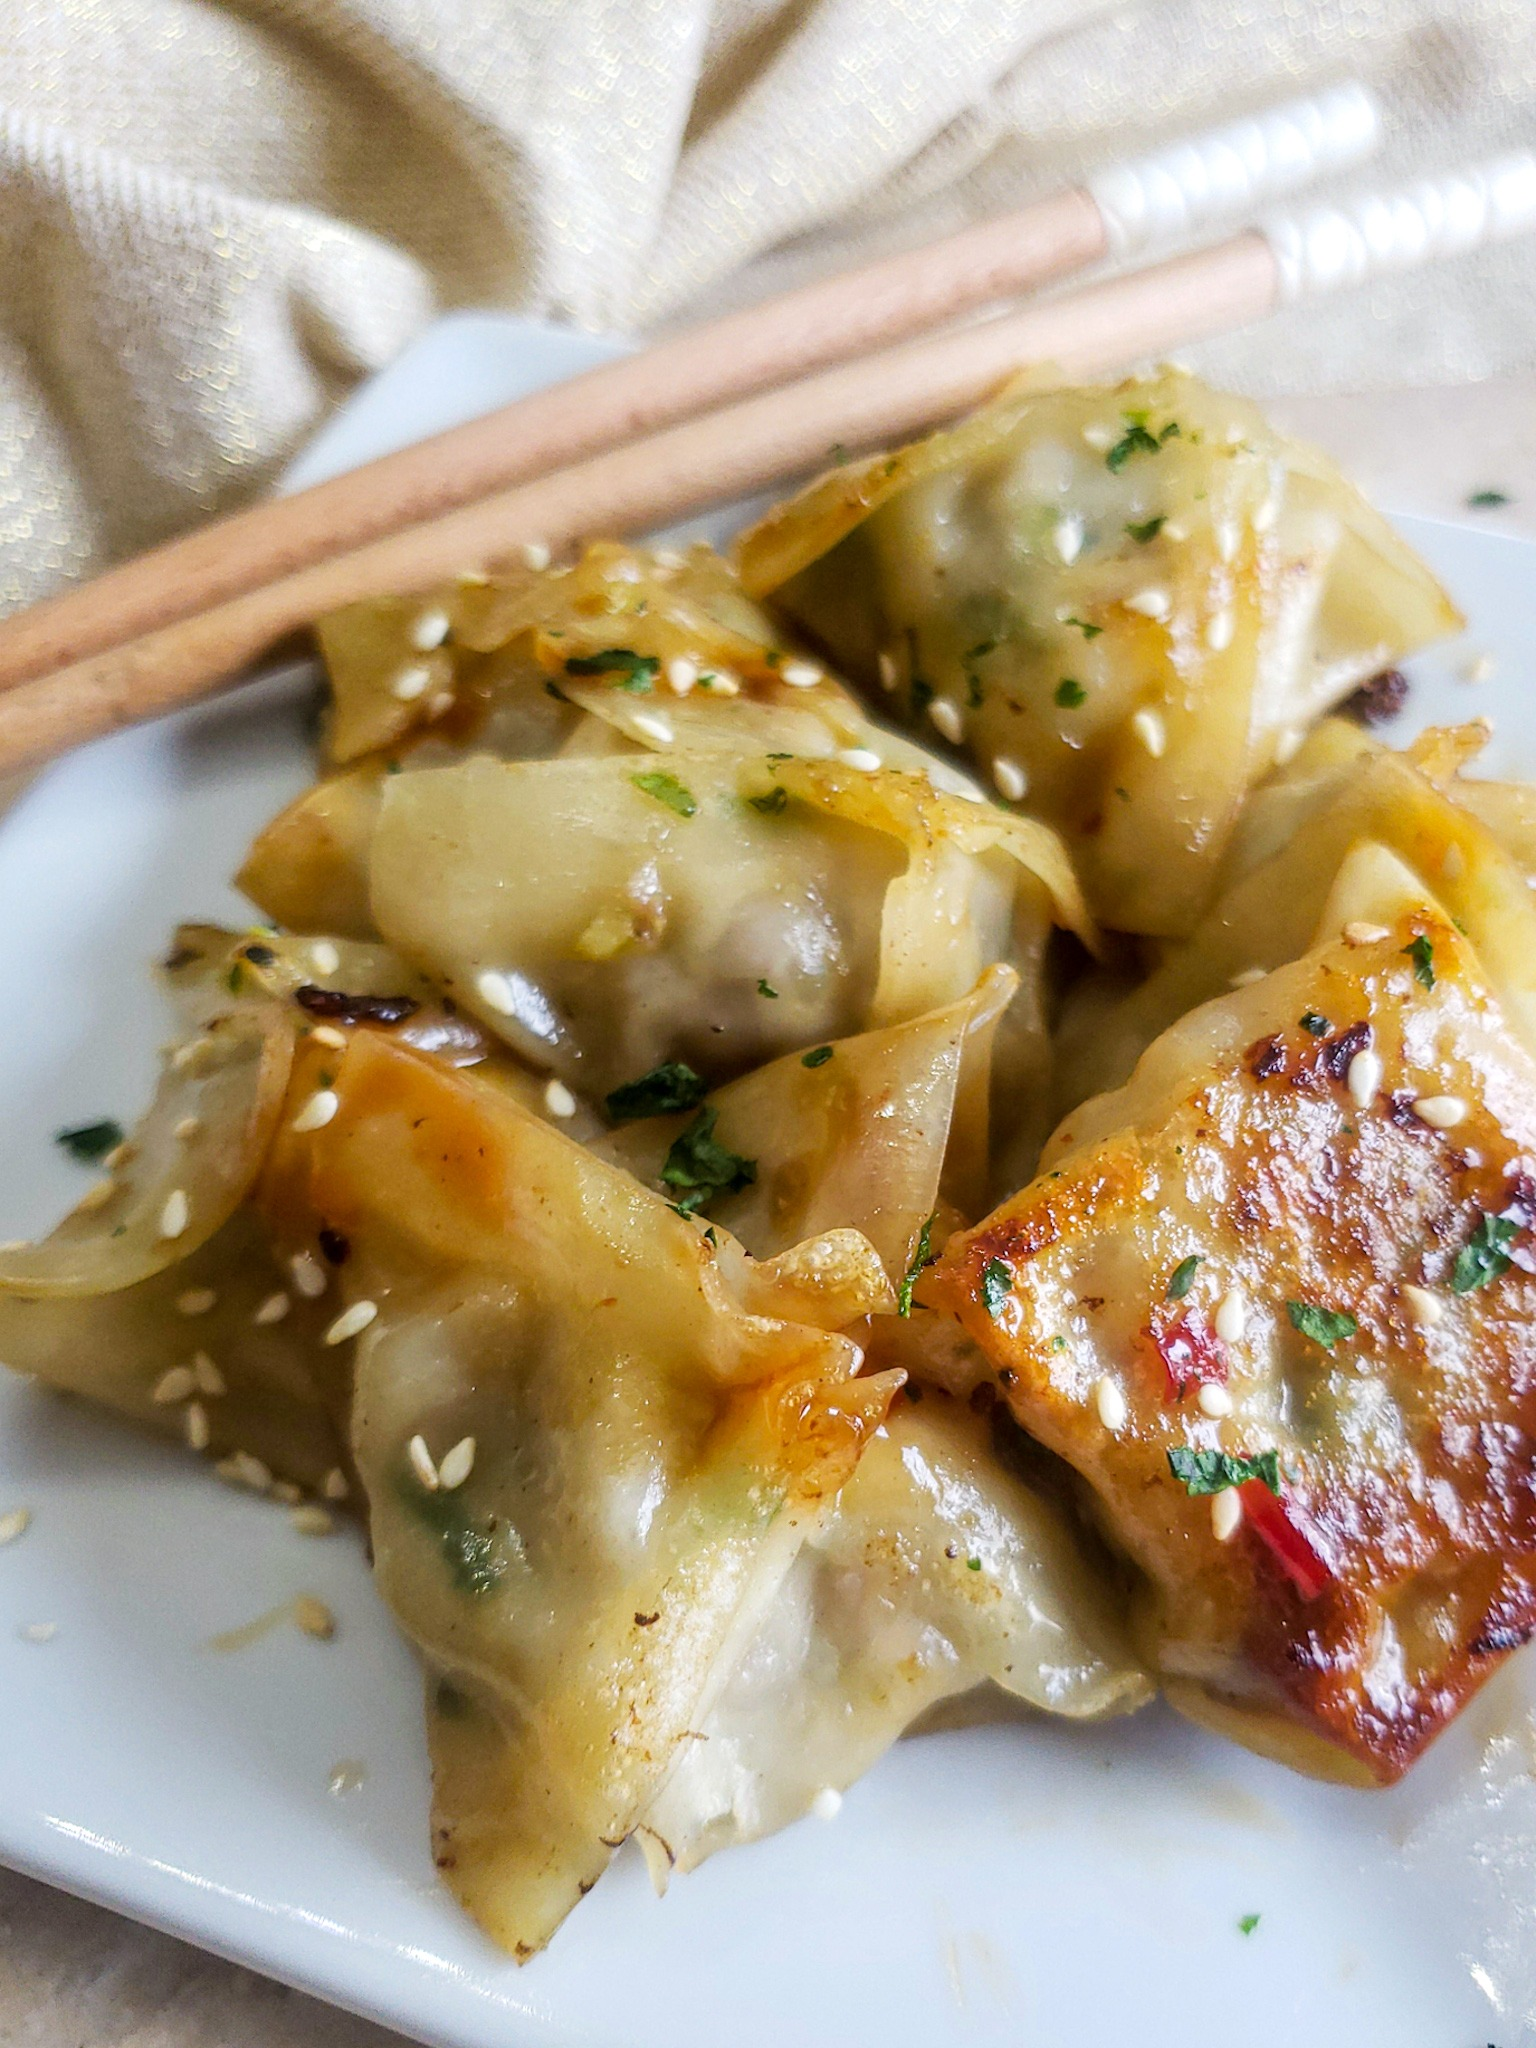 Ginger Pork and Brussels Sprout Potstickers with Sweet Chili Sauce